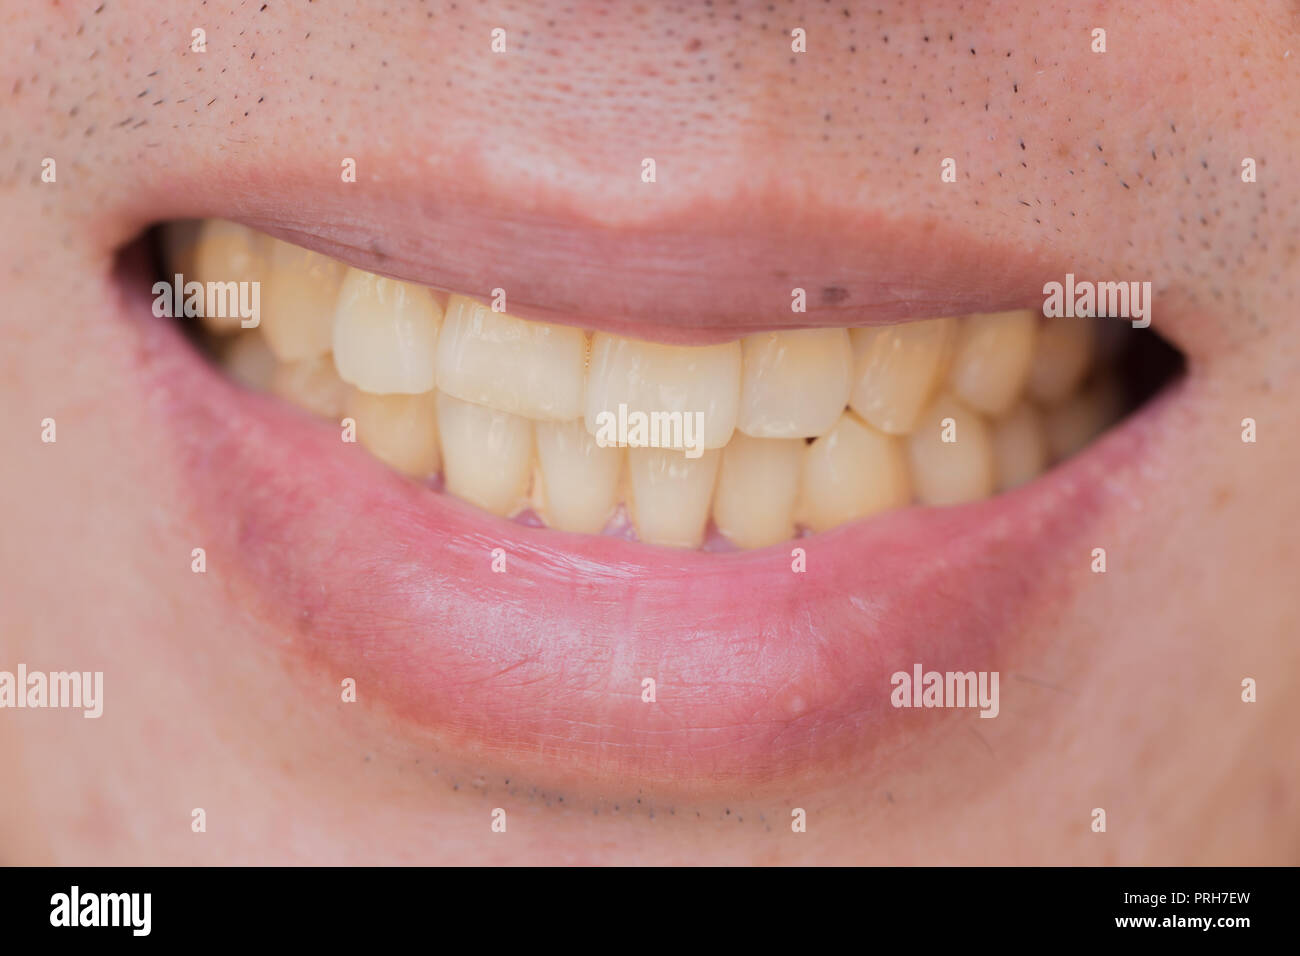 Why teeth are yellow